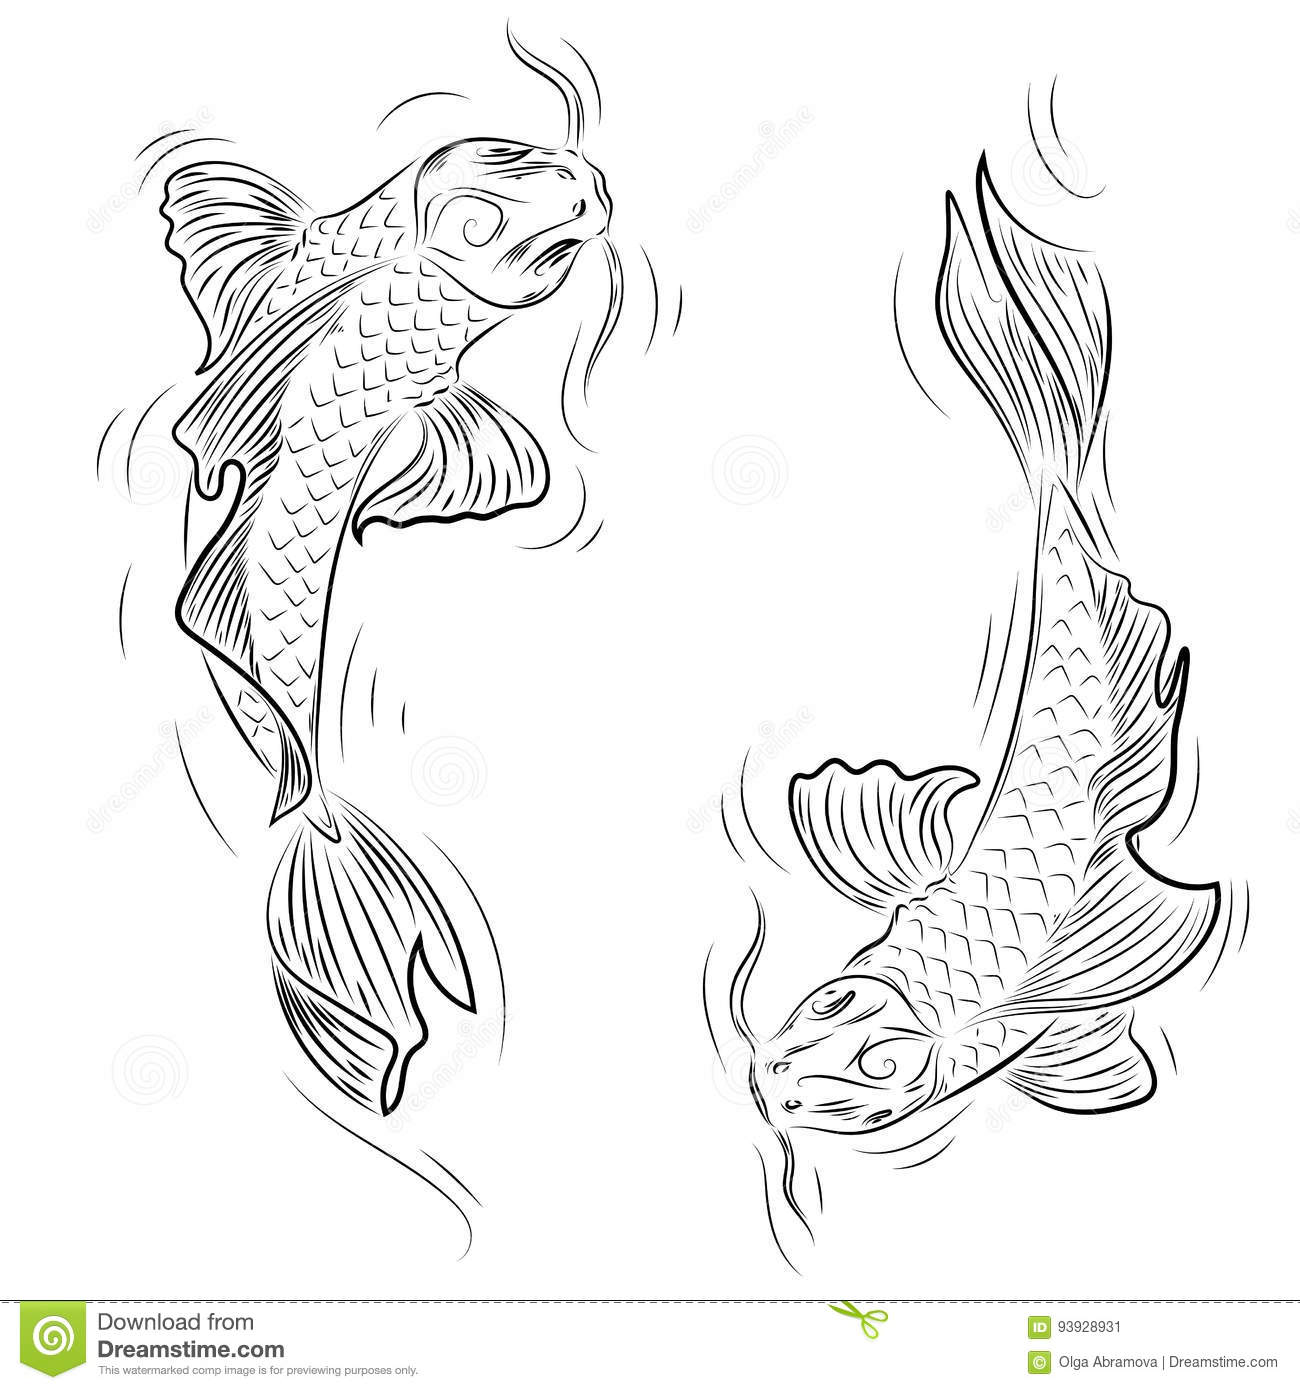 Adult Koi Fish Coloring Page - Get Coloring Pages | 1390x1300